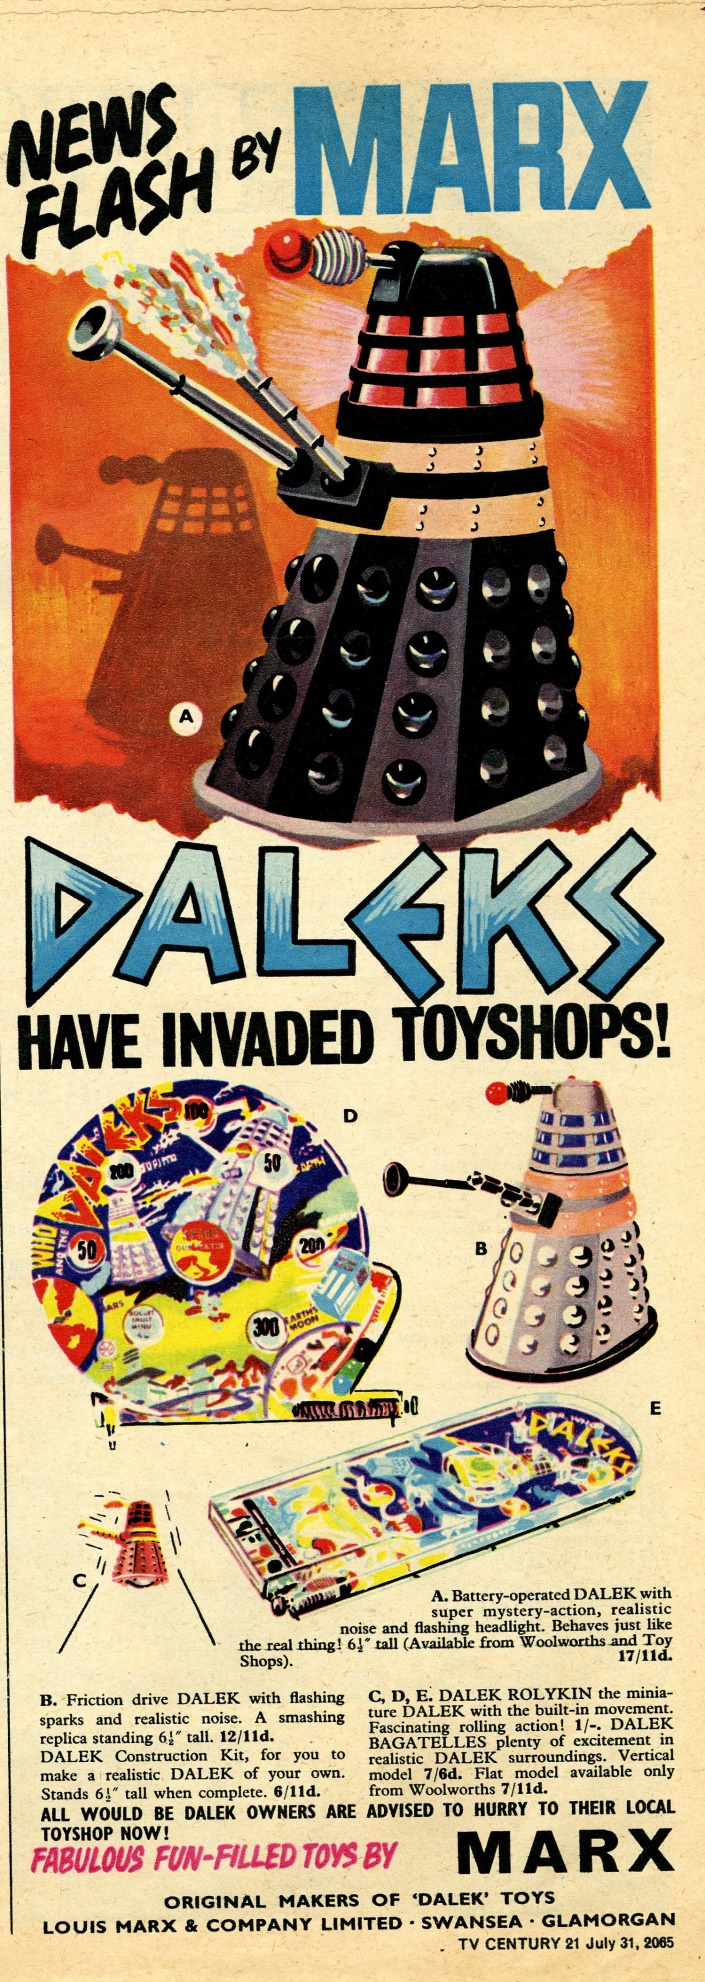 Ad. for Louis Marx and Company Ltd. Dalek toys in TV Century 21 #28, 31 July 2065 (1965)